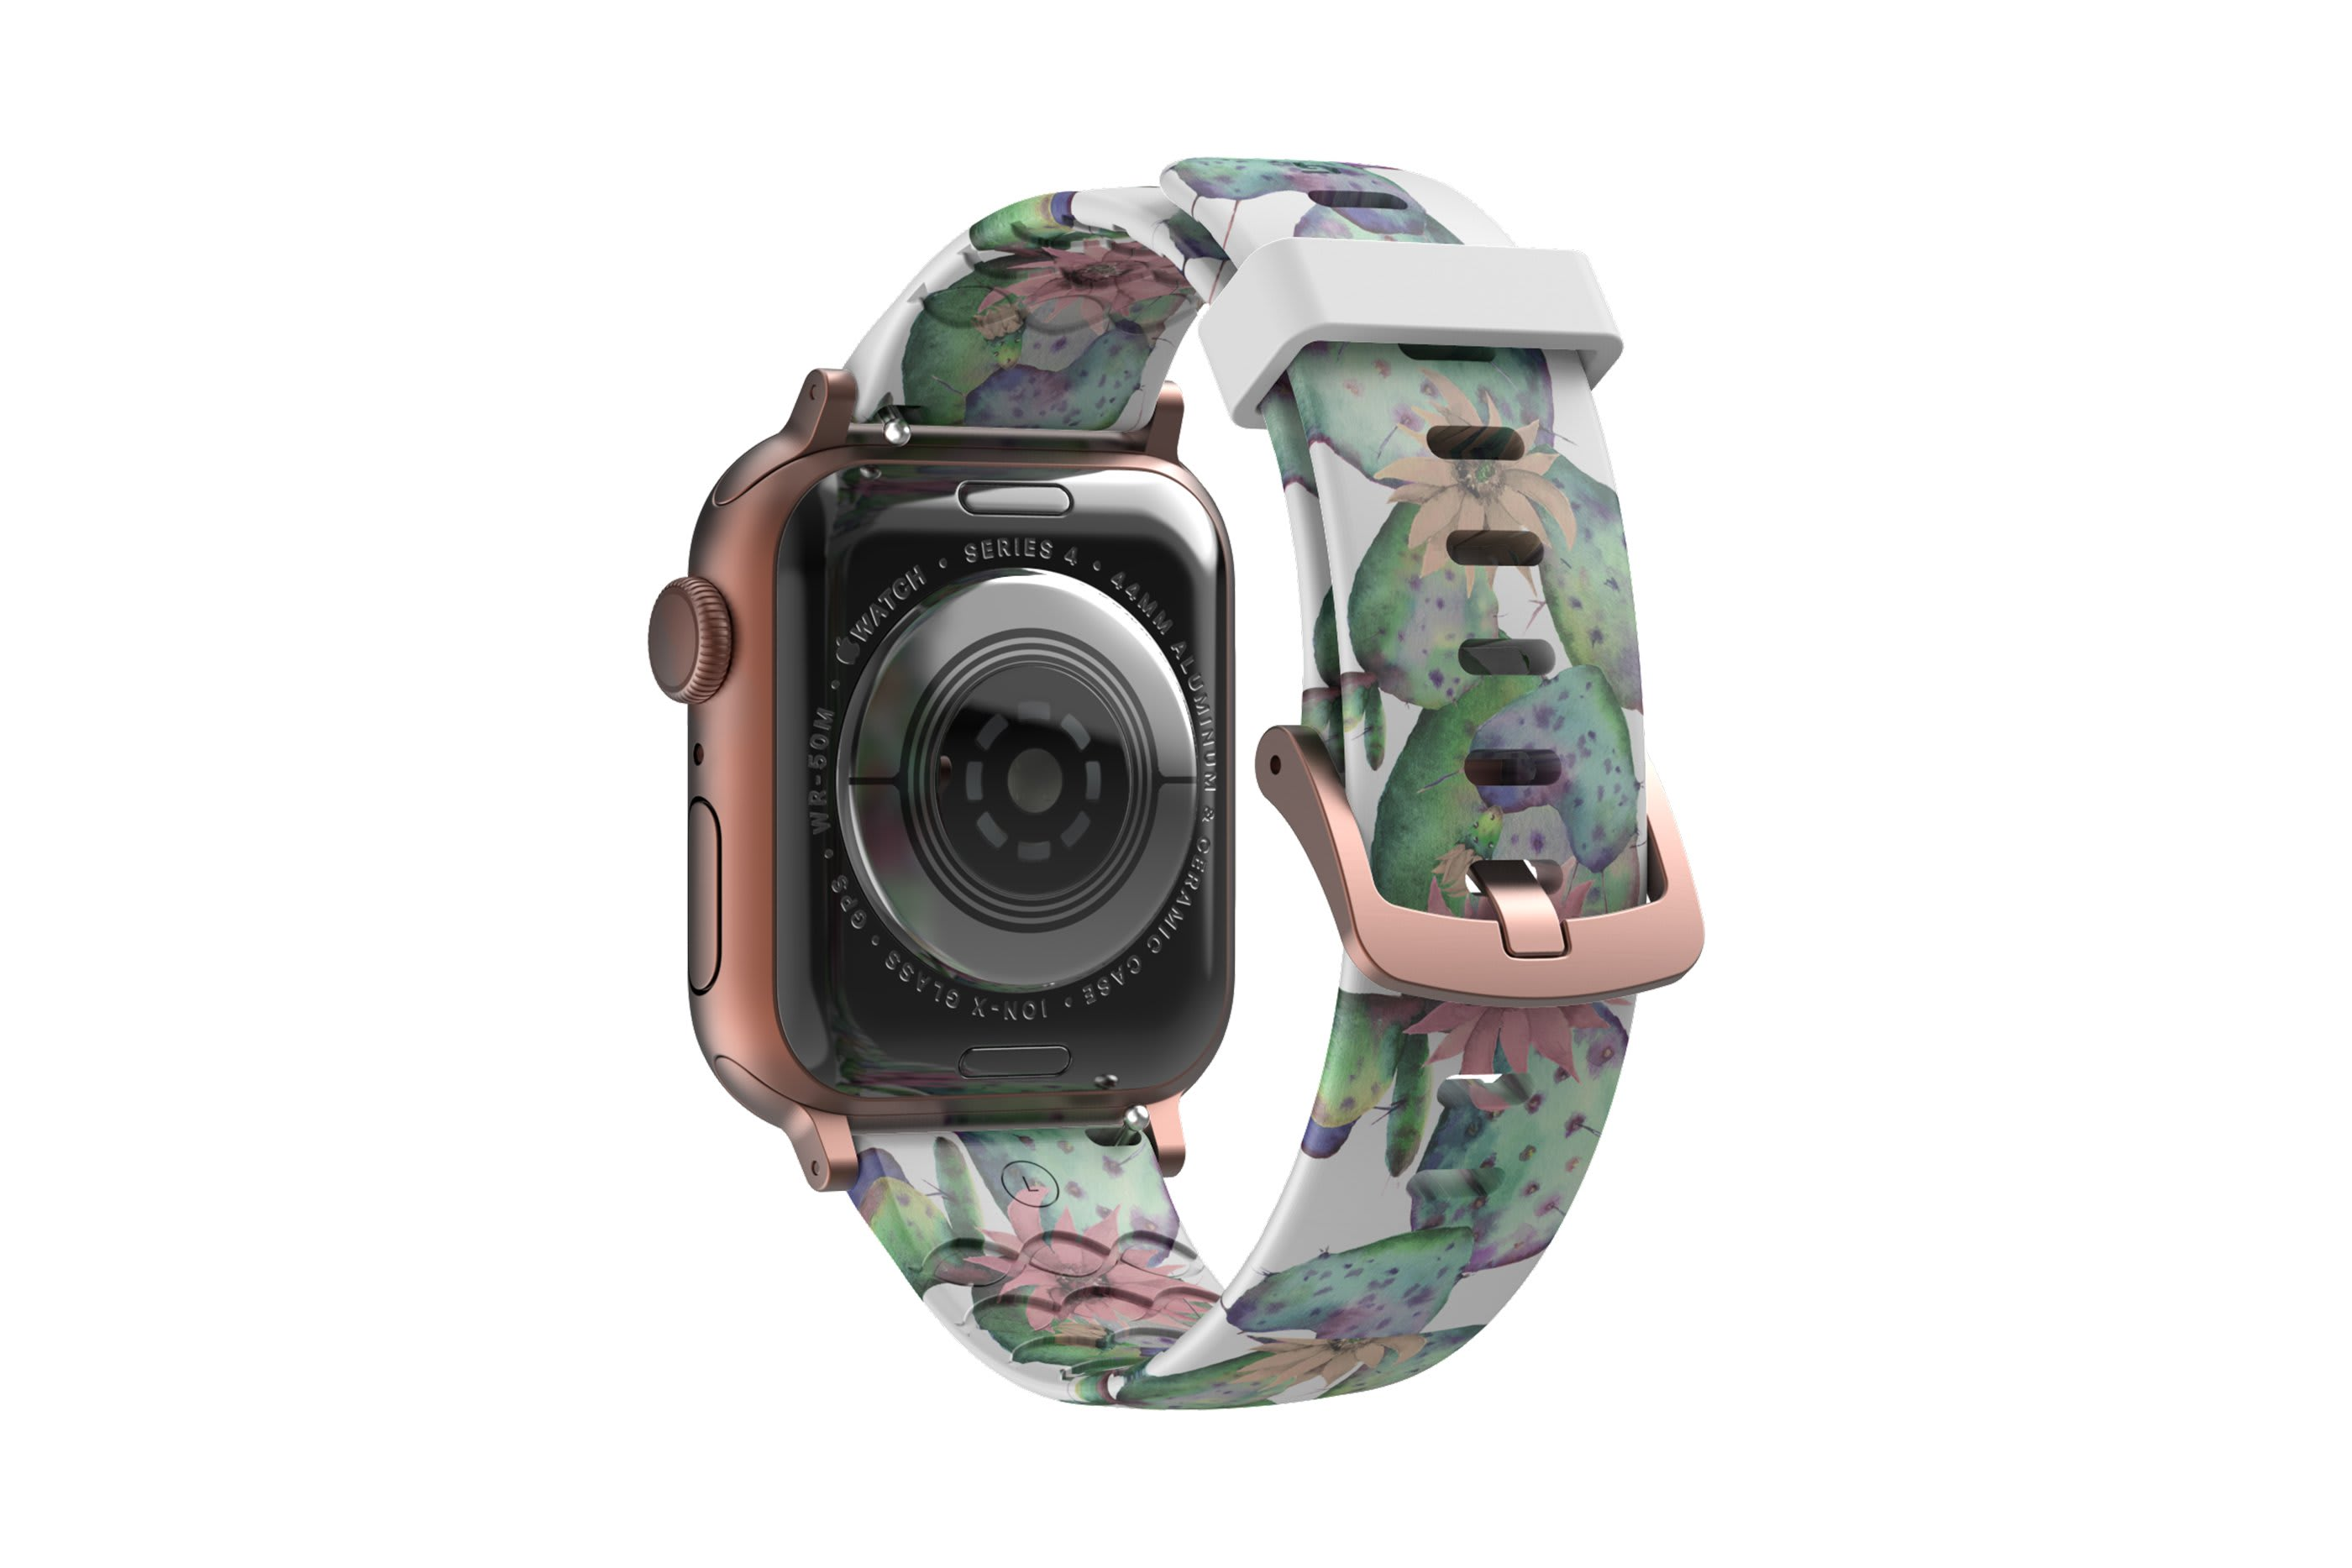 Cactus Bloom Apple Watch Band with rose gold hardware viewed from top down